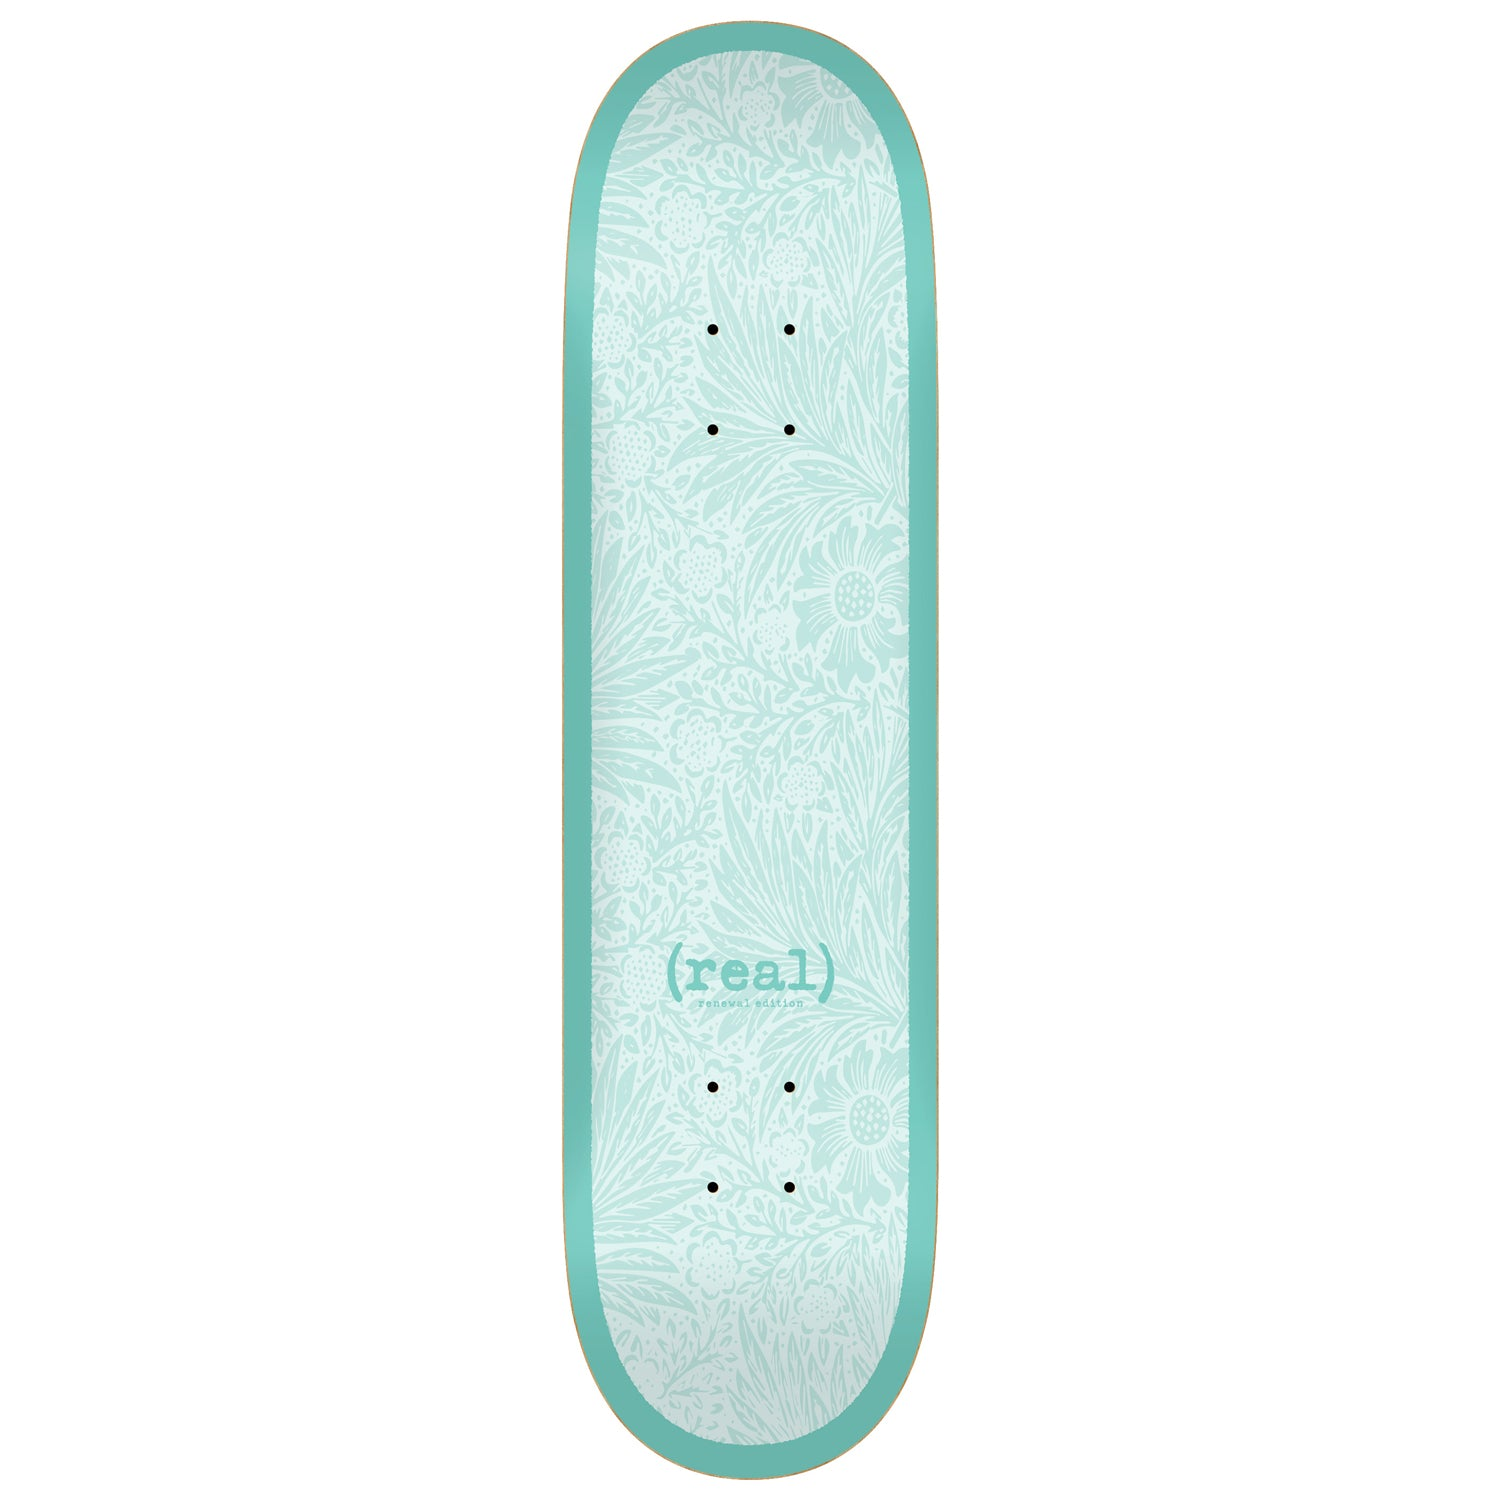 Real Flowers Renewal PP Deck 8.25""